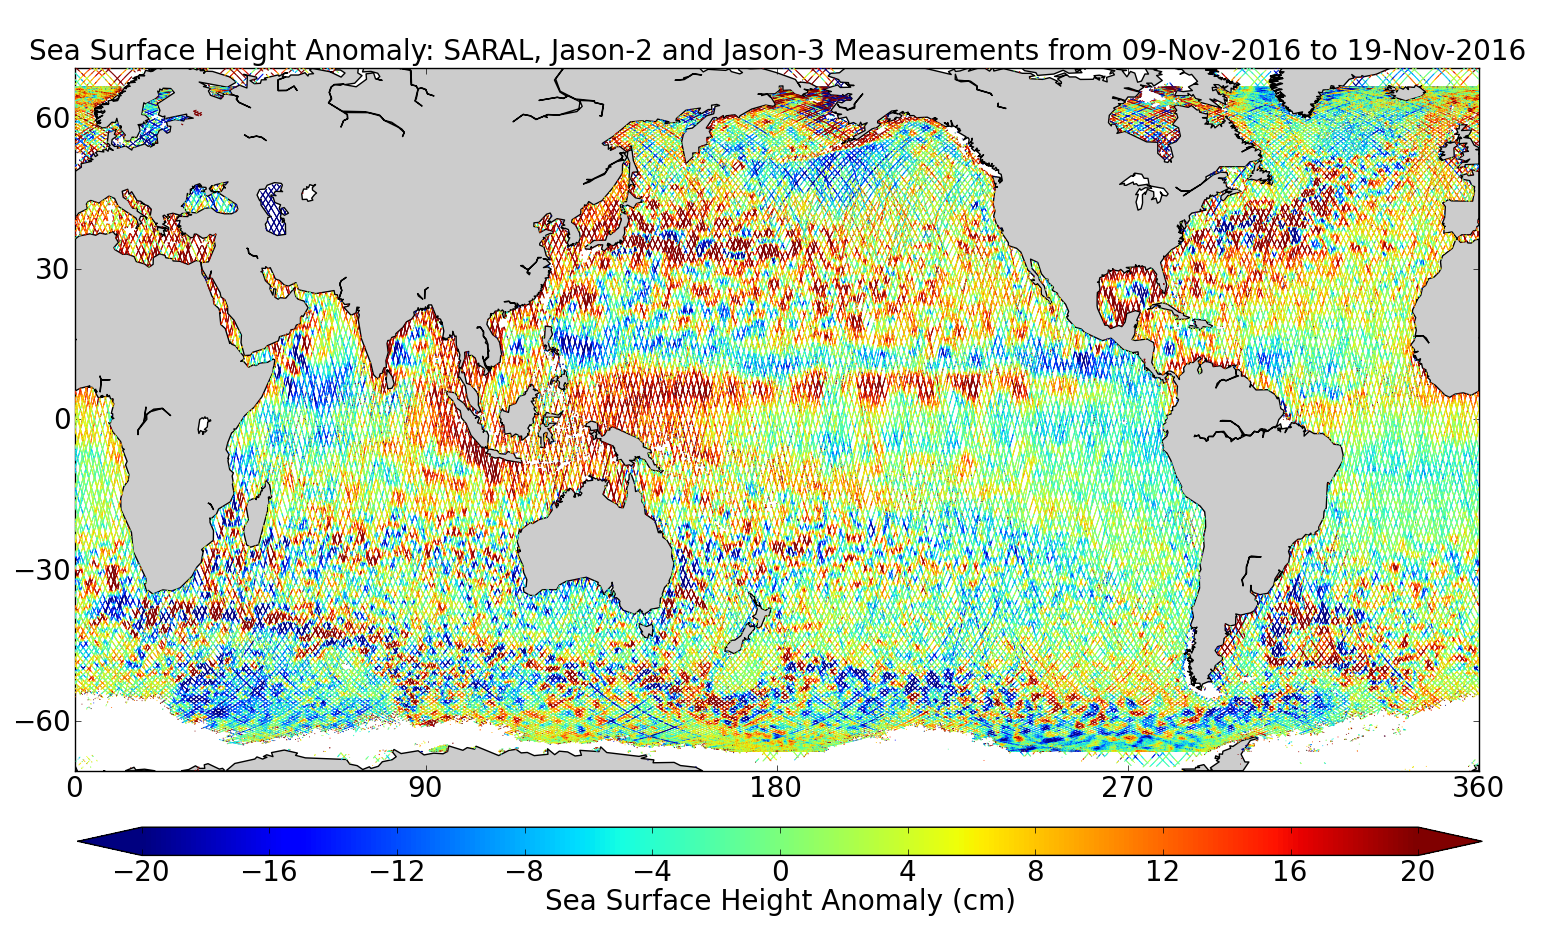 Sea Surface Height Anomaly: SARAL, Jason-2 and Jason-3 Measurements from 09-Nov-2016 to 19-Nov-2016